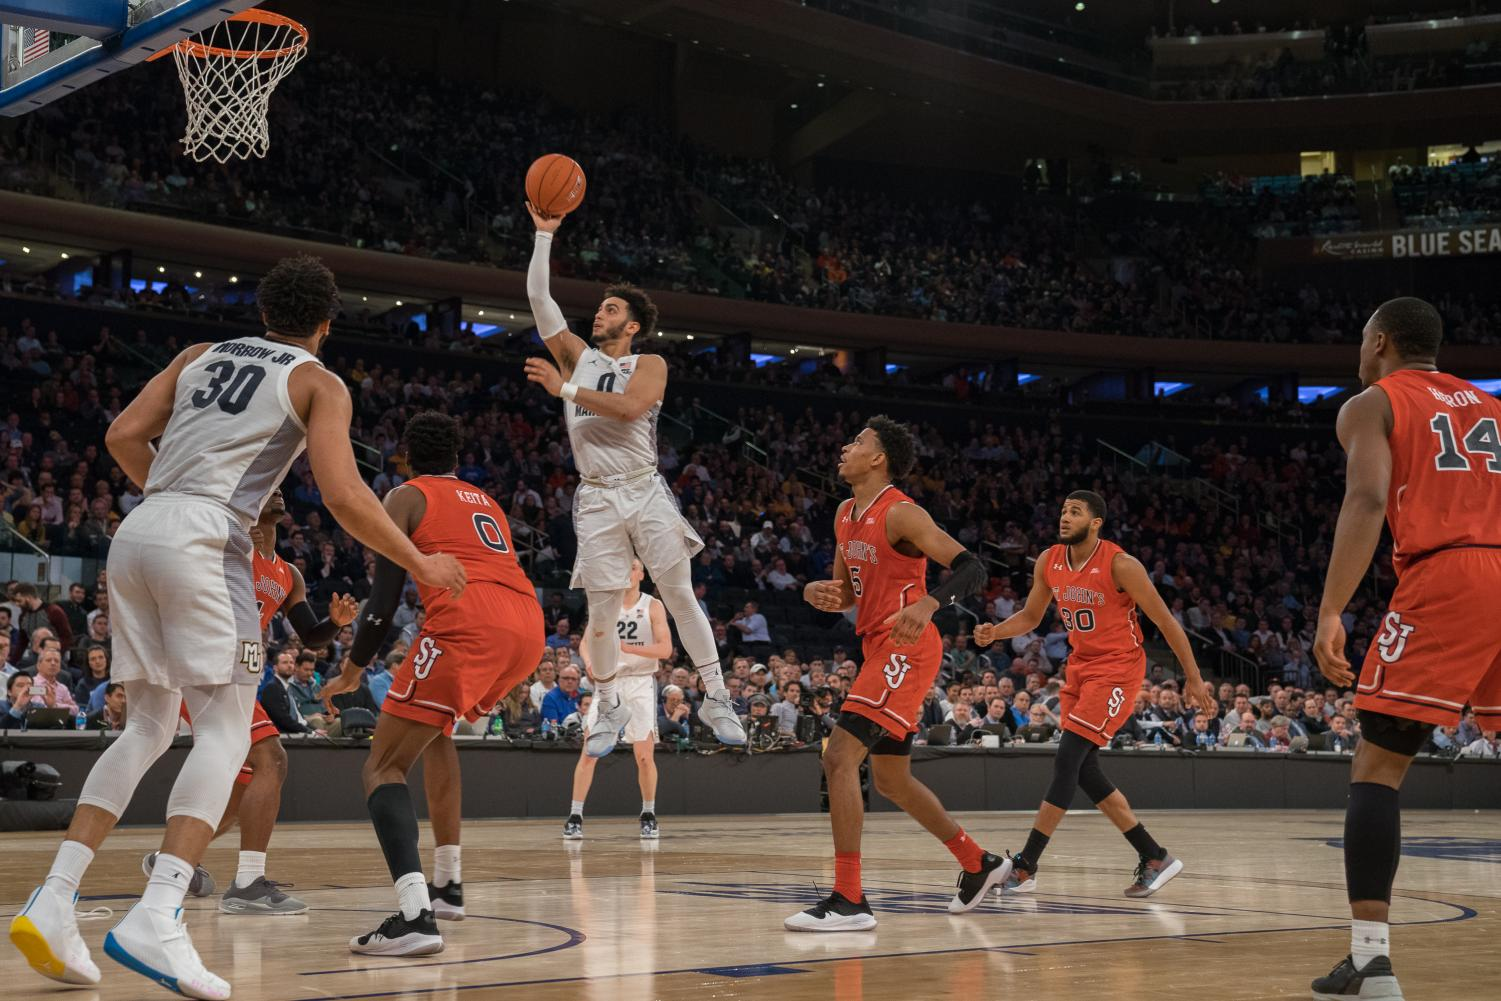 Markus Howard attempts a layup against St. John's in the BIG EAST Tournament quarterfinals.